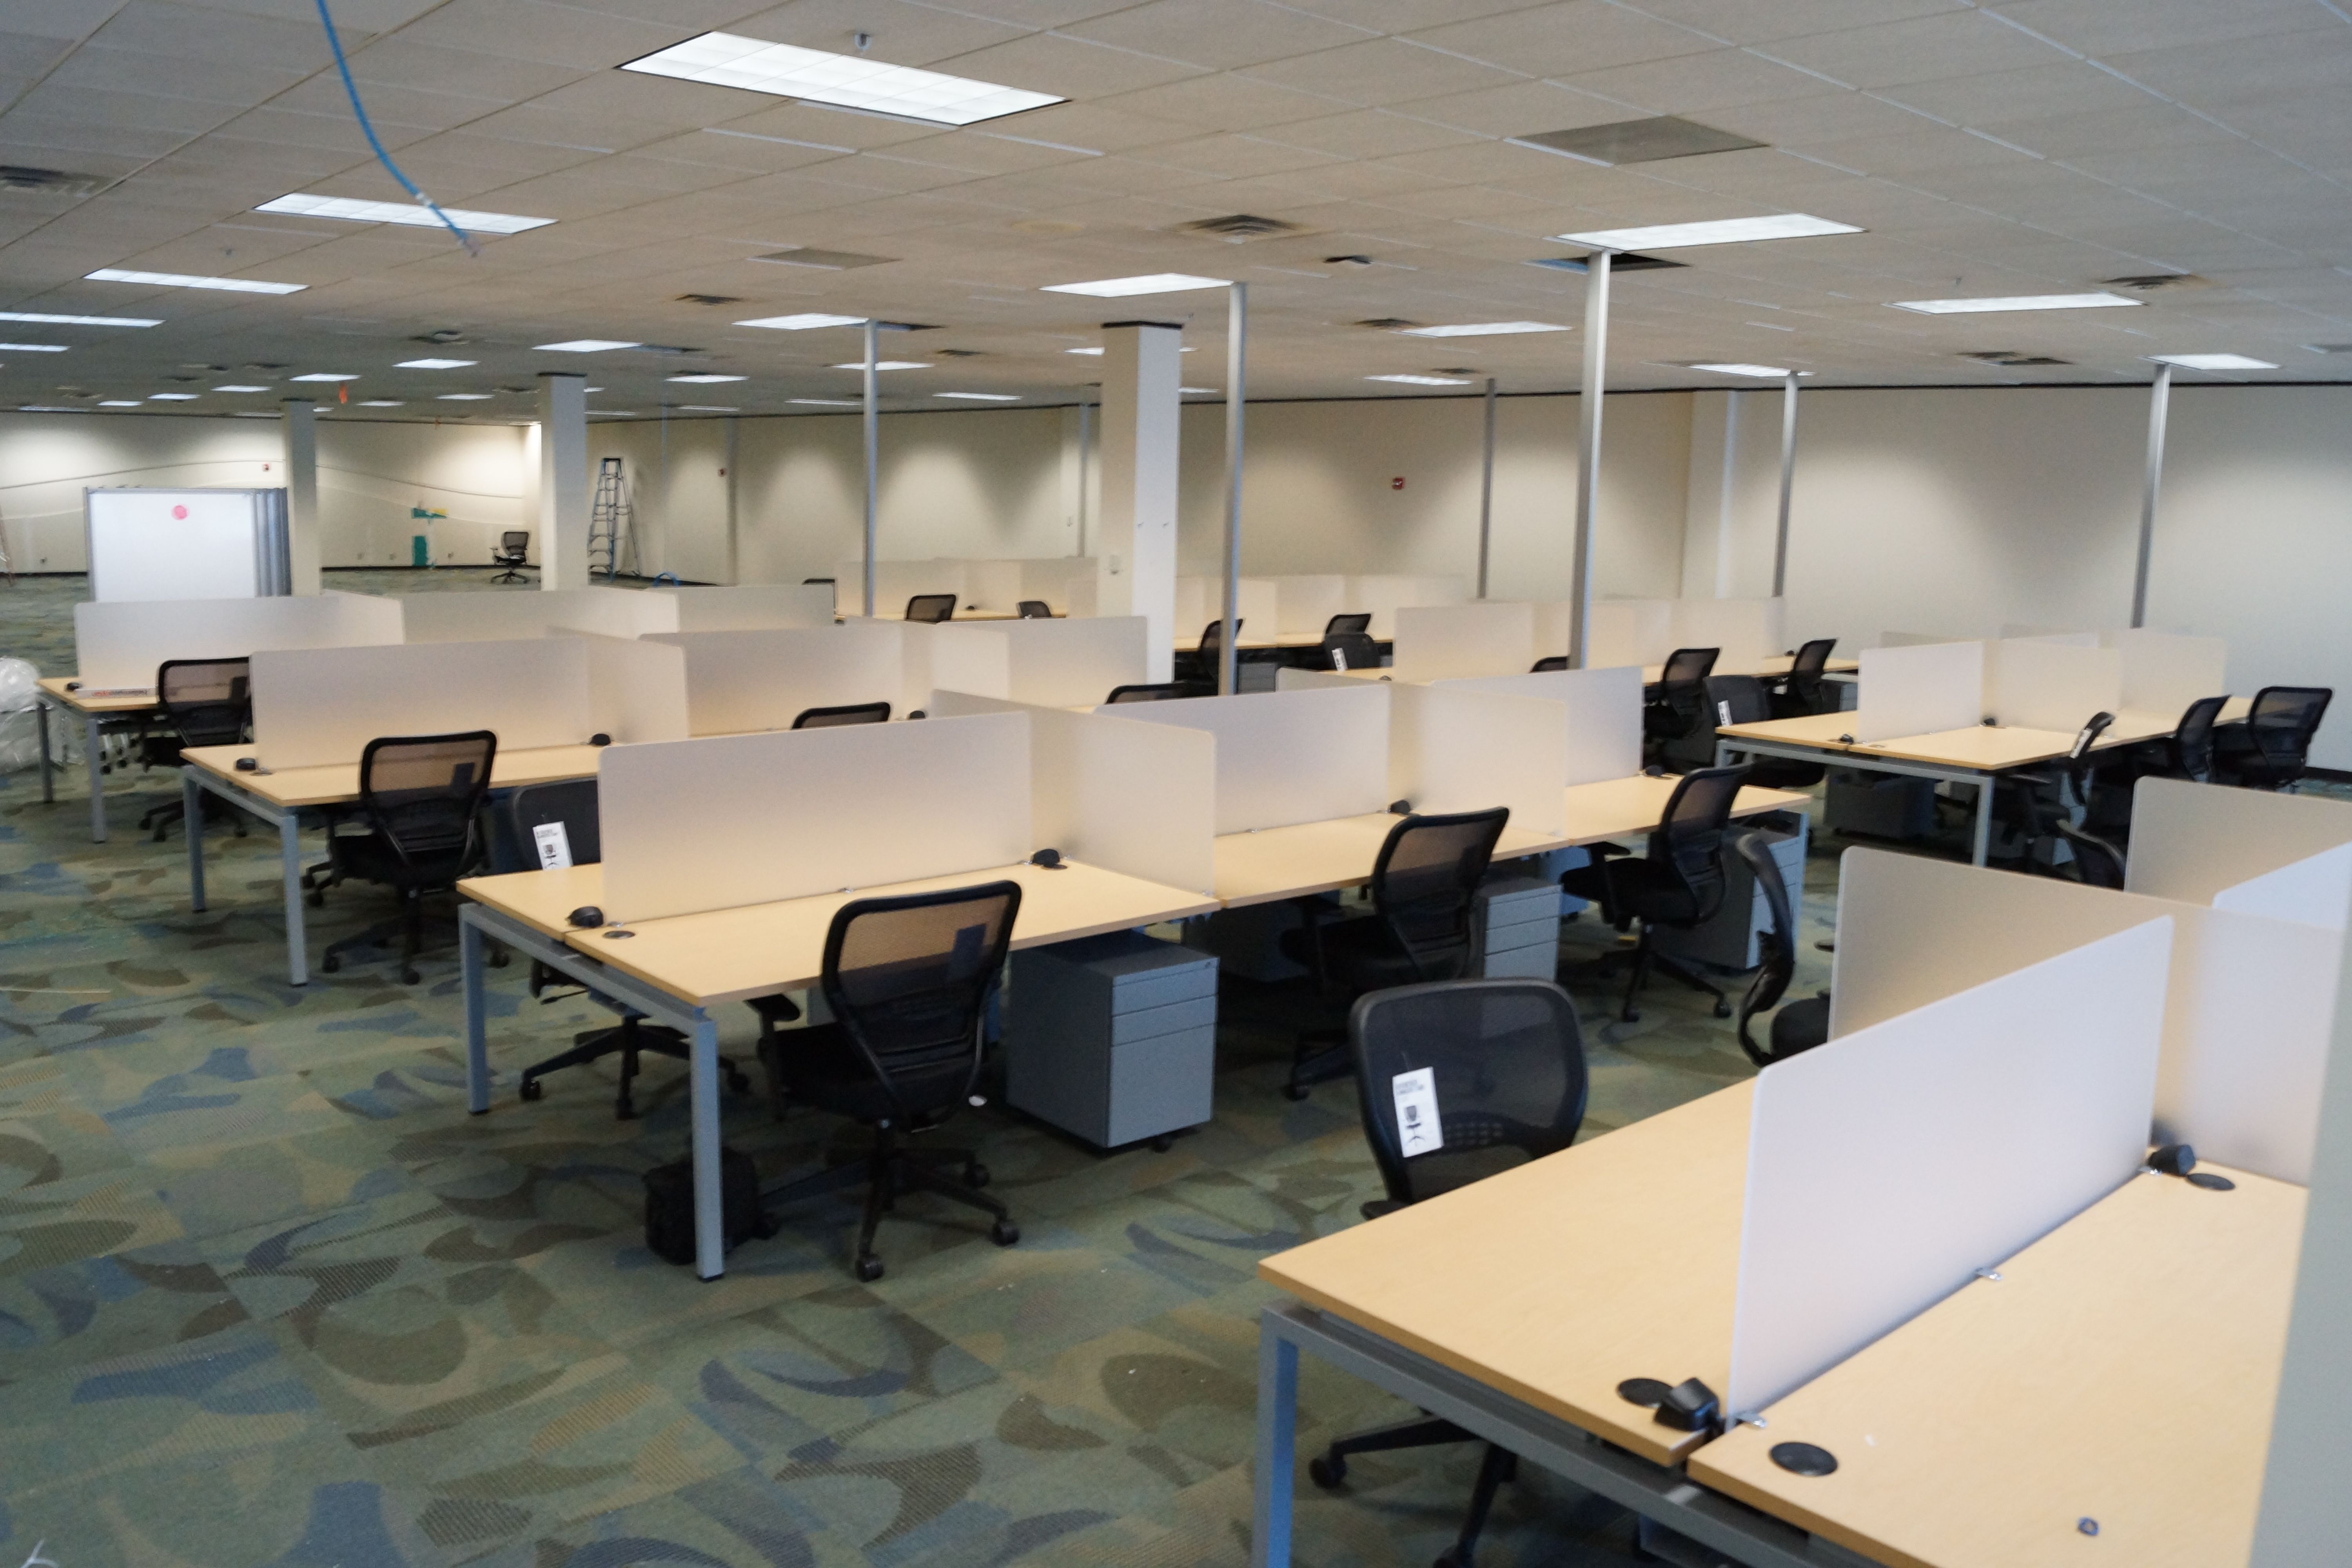 Office Furniture NOW! Delivers And Installs New, Used And Refurbished Office  Furniture And Cubicles In The Central Texas Area.